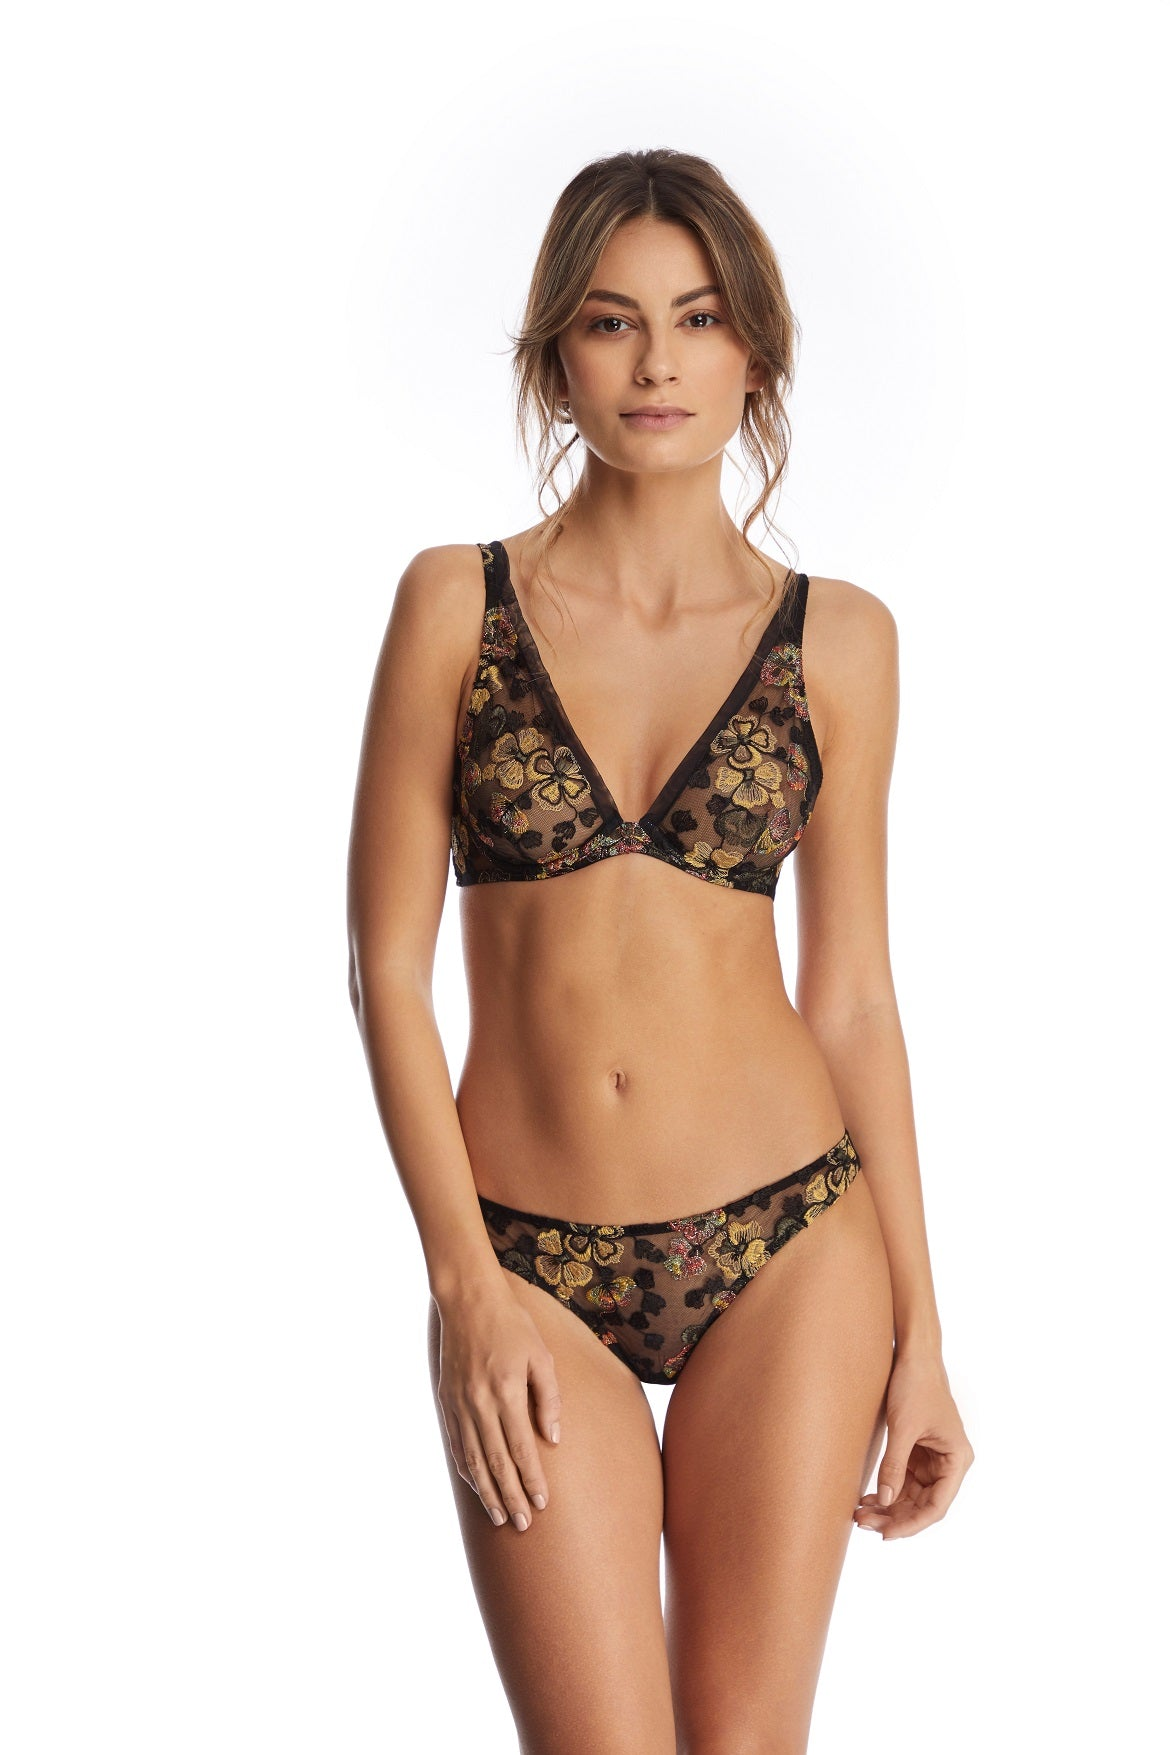 Midnight Delights Full Coverage Bra in Black Flowers - I.D. Sarrieri